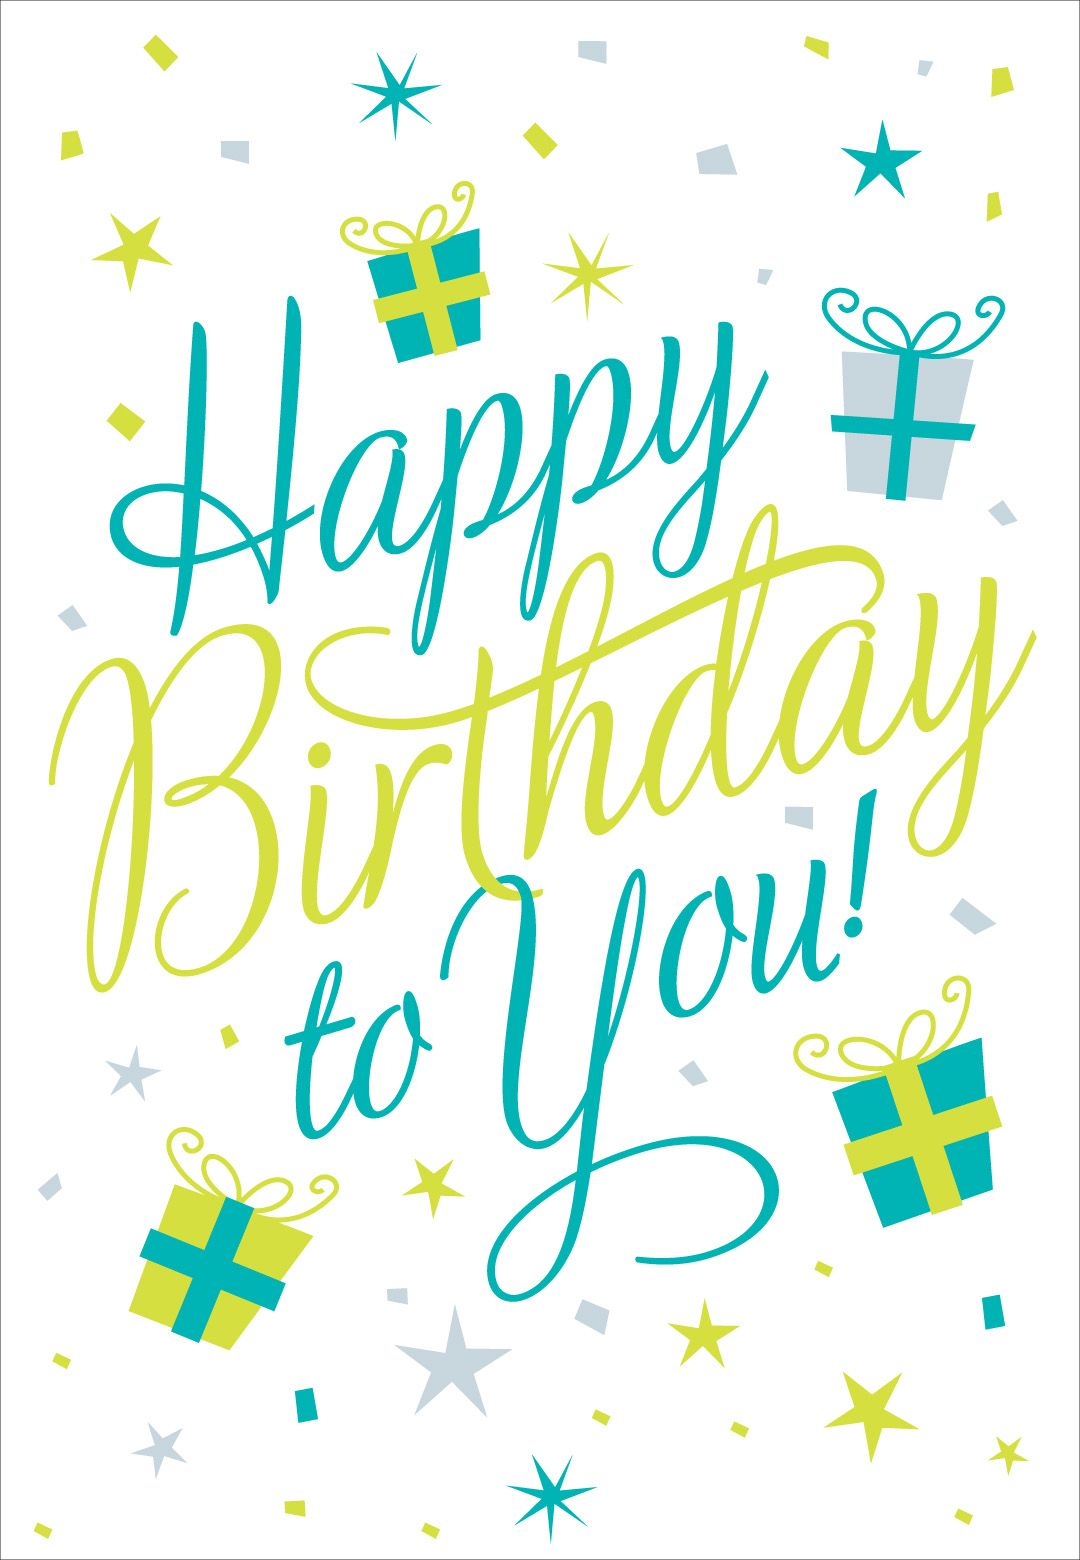 Happy Birthday to You Birthday Card (Free) Greetings